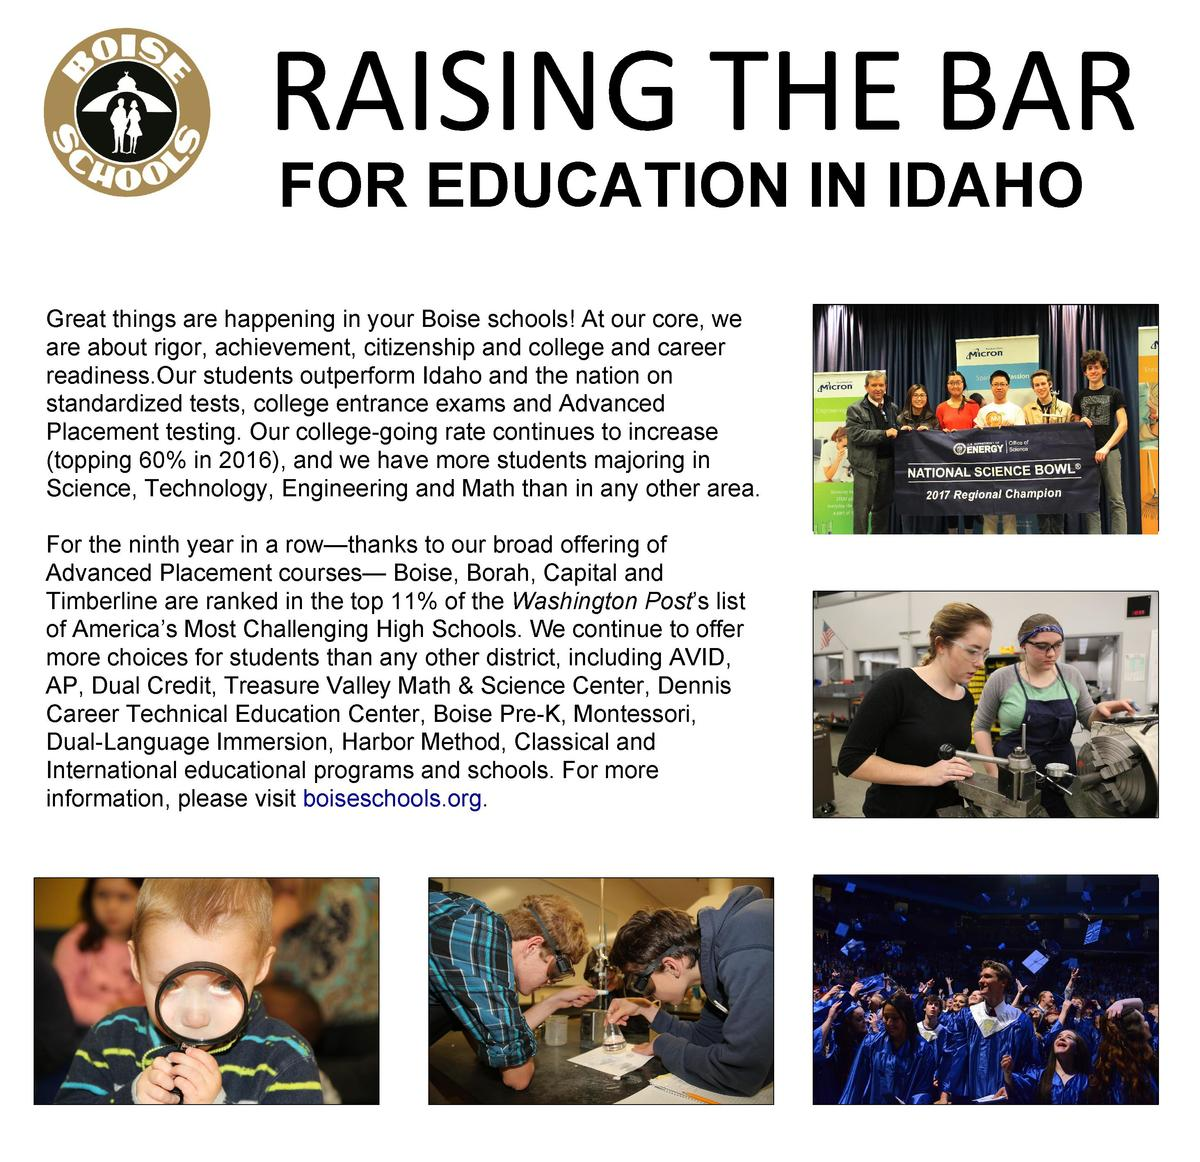 FOR EDUCATION IN IDAHO Great things are happening in your Boise schools  At our core, we are about rigor, achievement, cit...